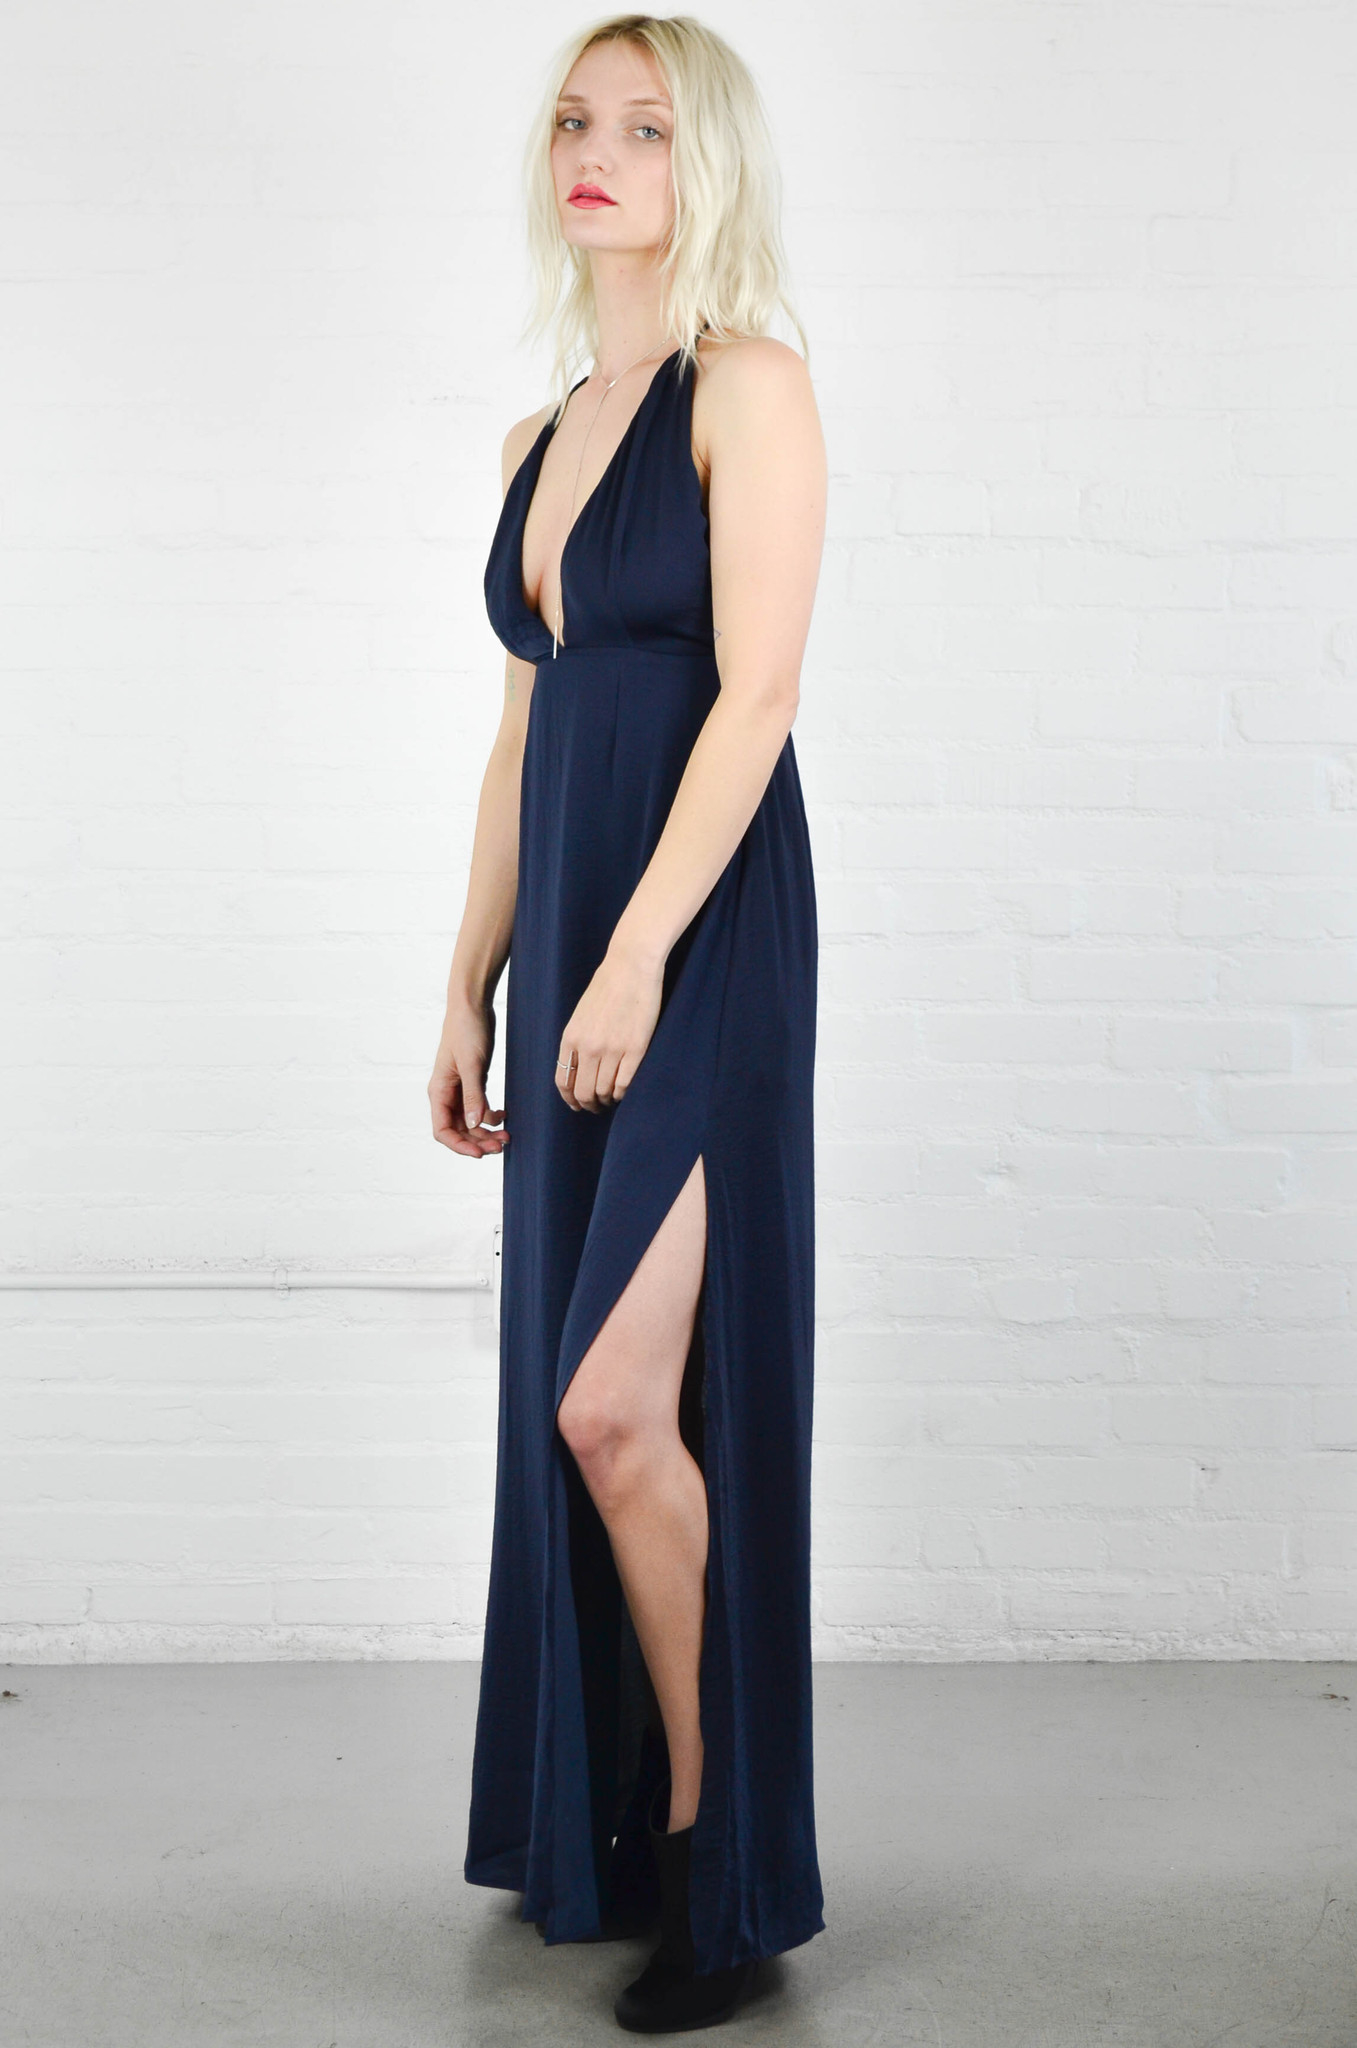 whomeverf.cf: navy halter dress. From The Community. semi-formal Navy Blue dresses without sleeves; cute #AWDSD - Square Neck Halter Neck Swing Dress For Women With Plus Size. Dressystar Women's Halter Floral Lace Cocktail Party Dress Hi-Lo Bridesmaid Dress. by Dressystar.